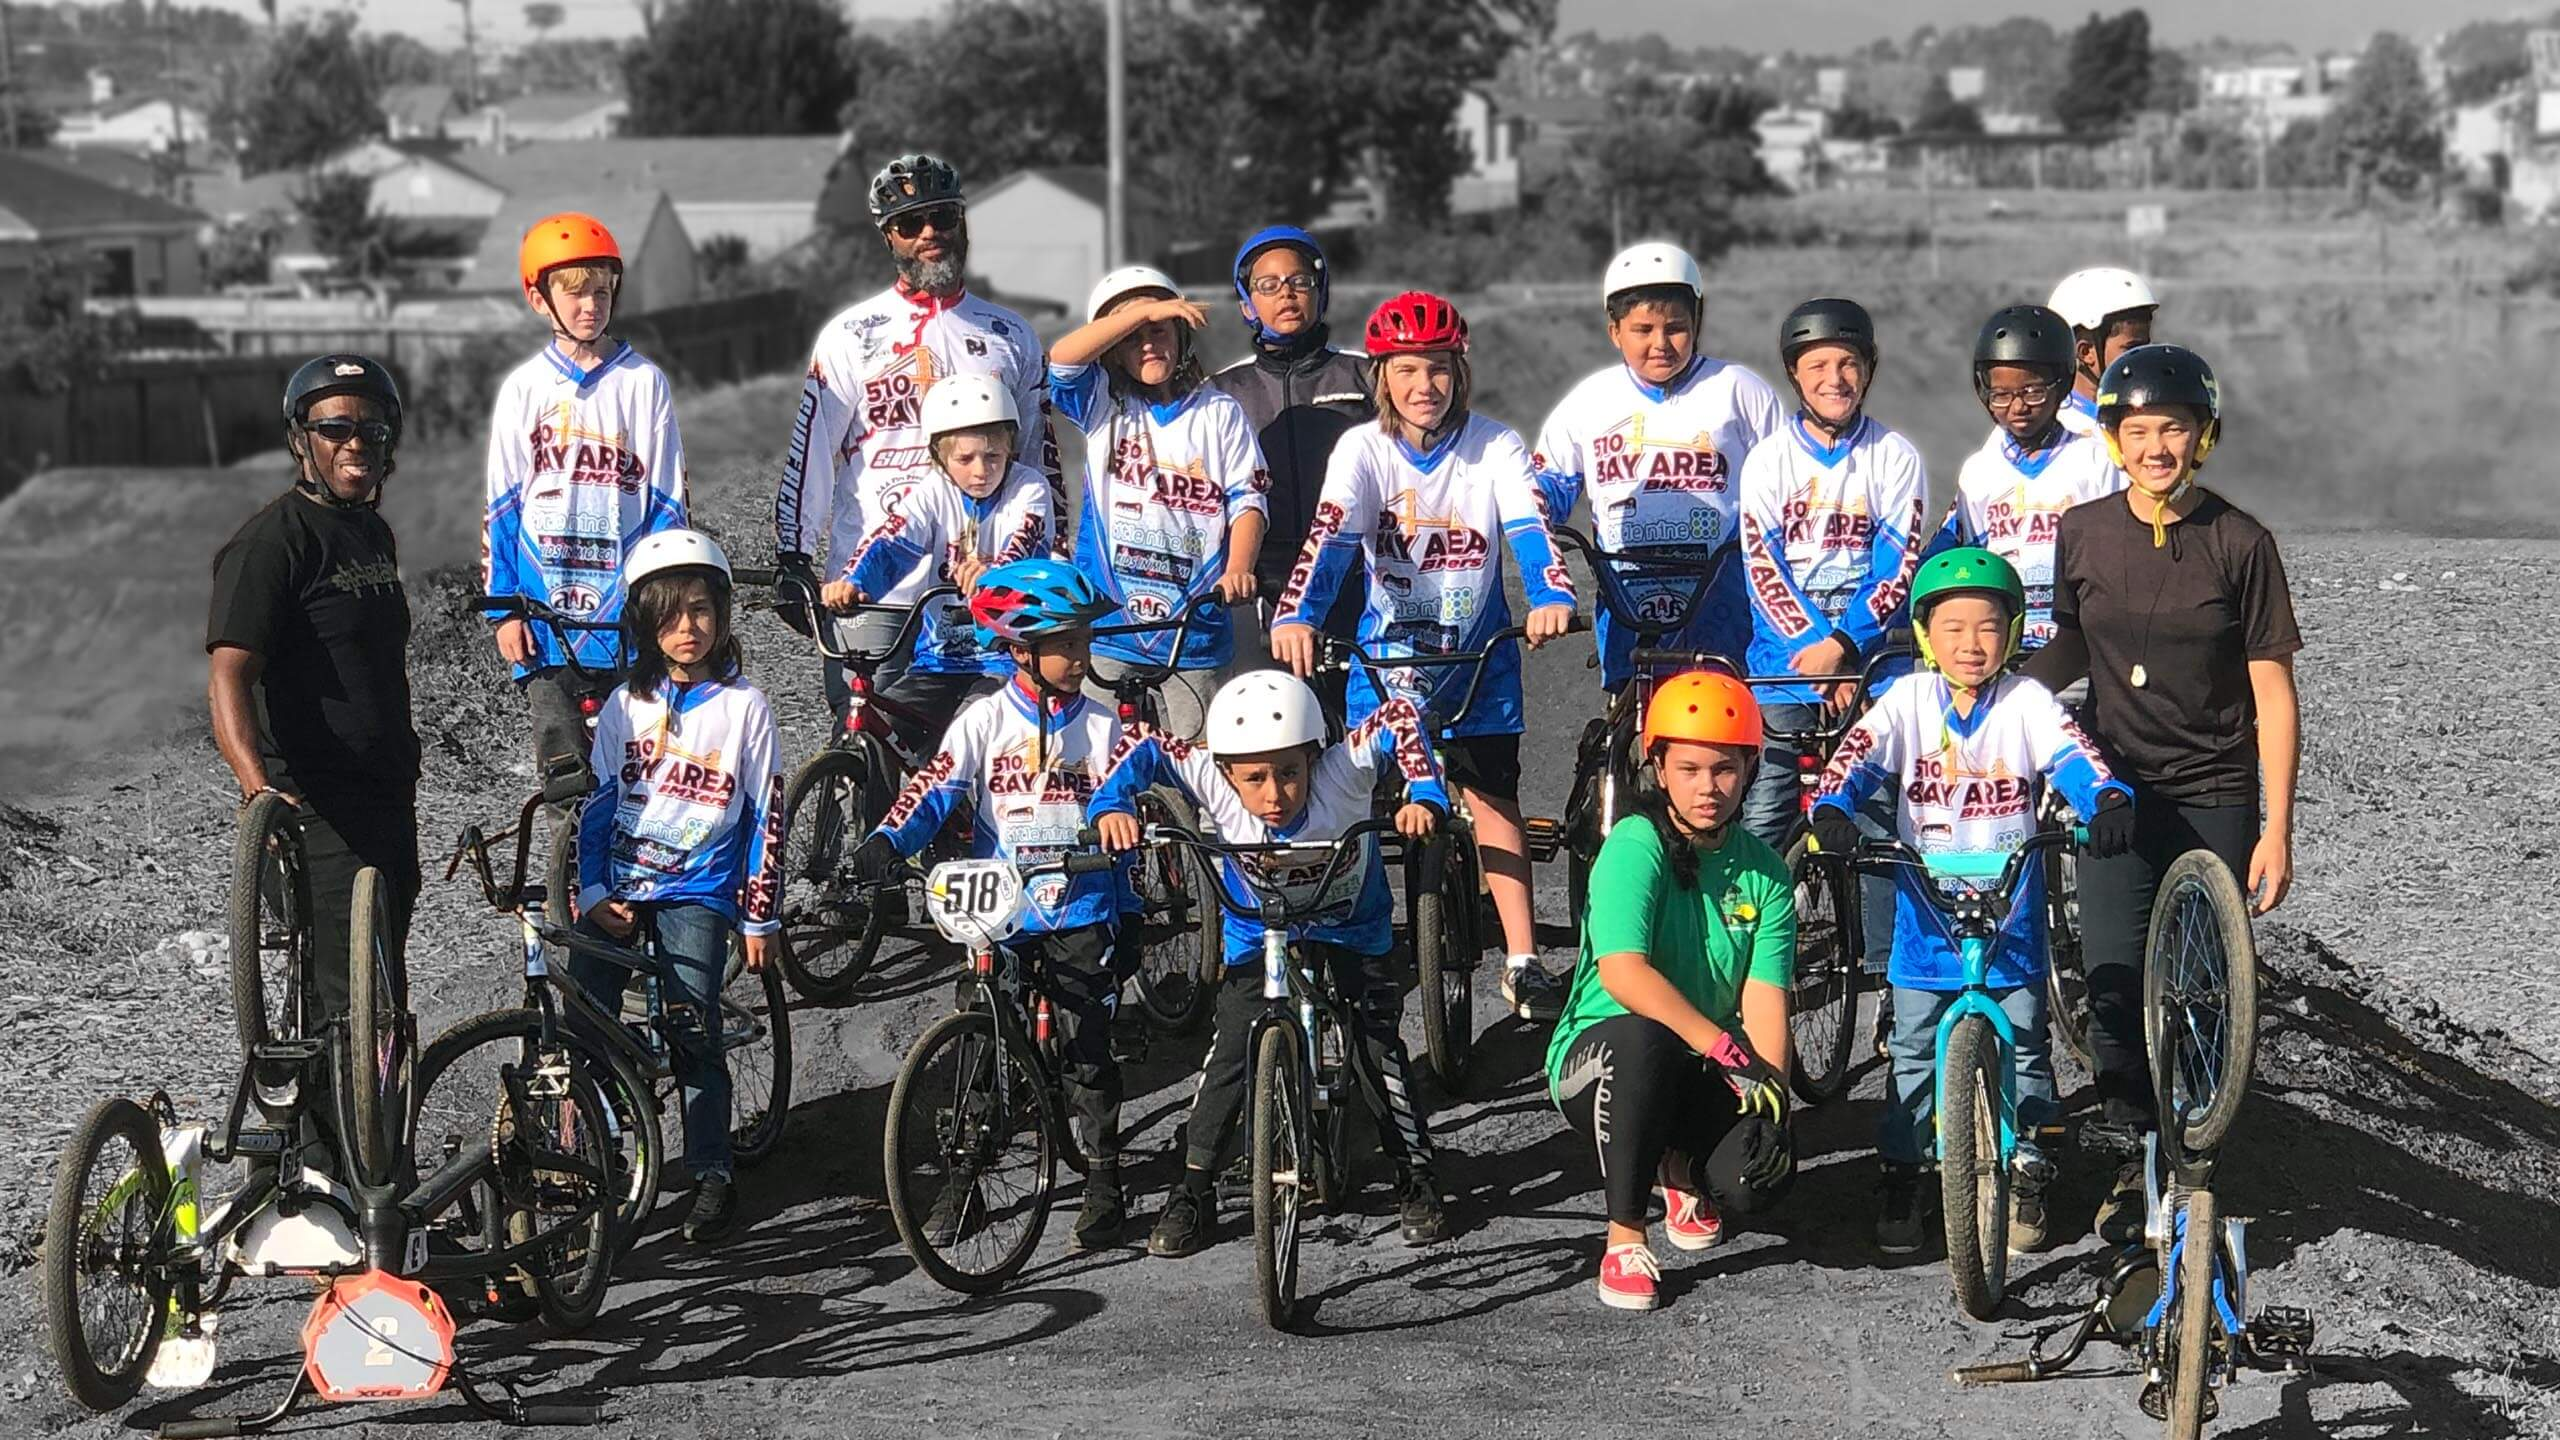 bay area bmxers summer camp 2020